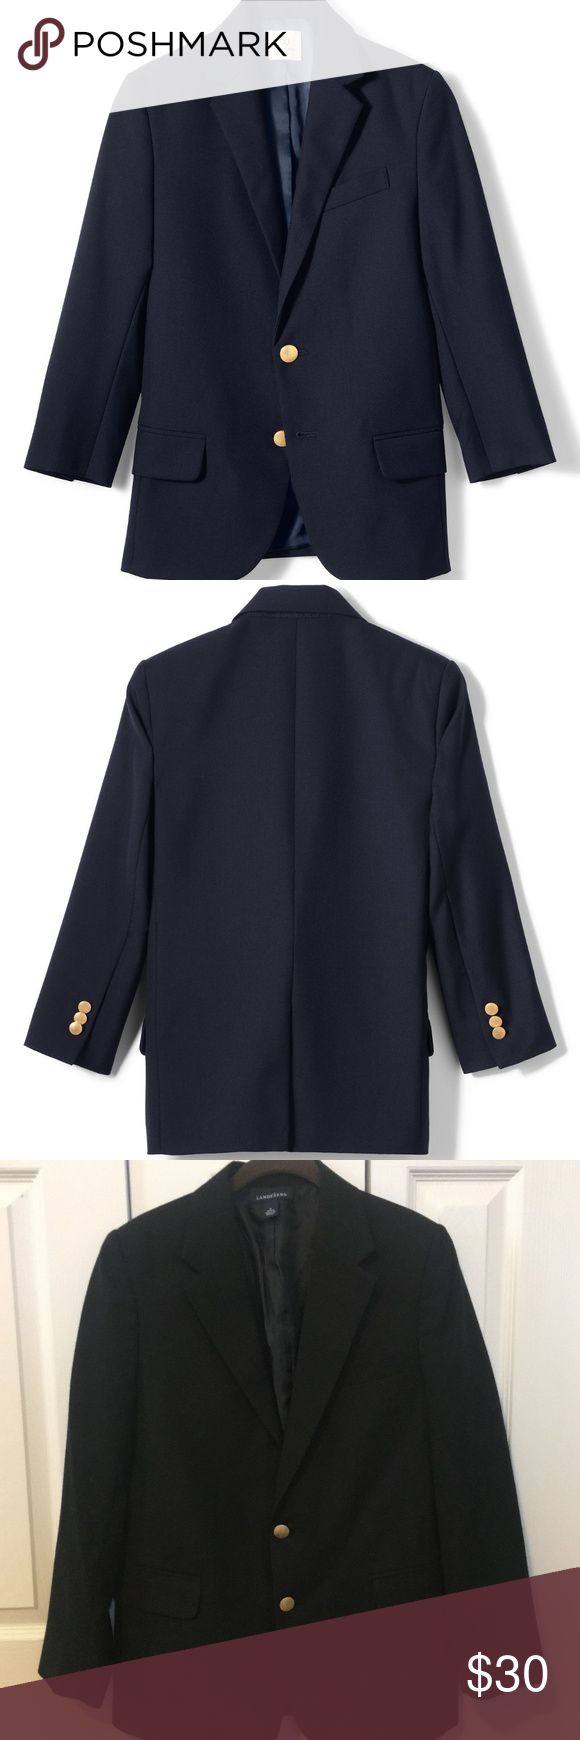 Lands End Boys Hopsack Blazer - Navy Uniform sz 16 Gently Worn but in good condition. Lands End School Uniform Boys Hopsack Blazer - Navy with Gold Buttons. Size 16 Regular It comes complete with a full lining, (just like a man's blazer), padded shoulders, vented back, and a felt-lined collar to lie smoothly. The durable poly/wool blend sheds wrinkles and keeps pills at bay.  Fully lined for comfort Padded shoulders Felt-lined collar 55% polyester/45% wool Lands' End Jackets & Coats Blazers